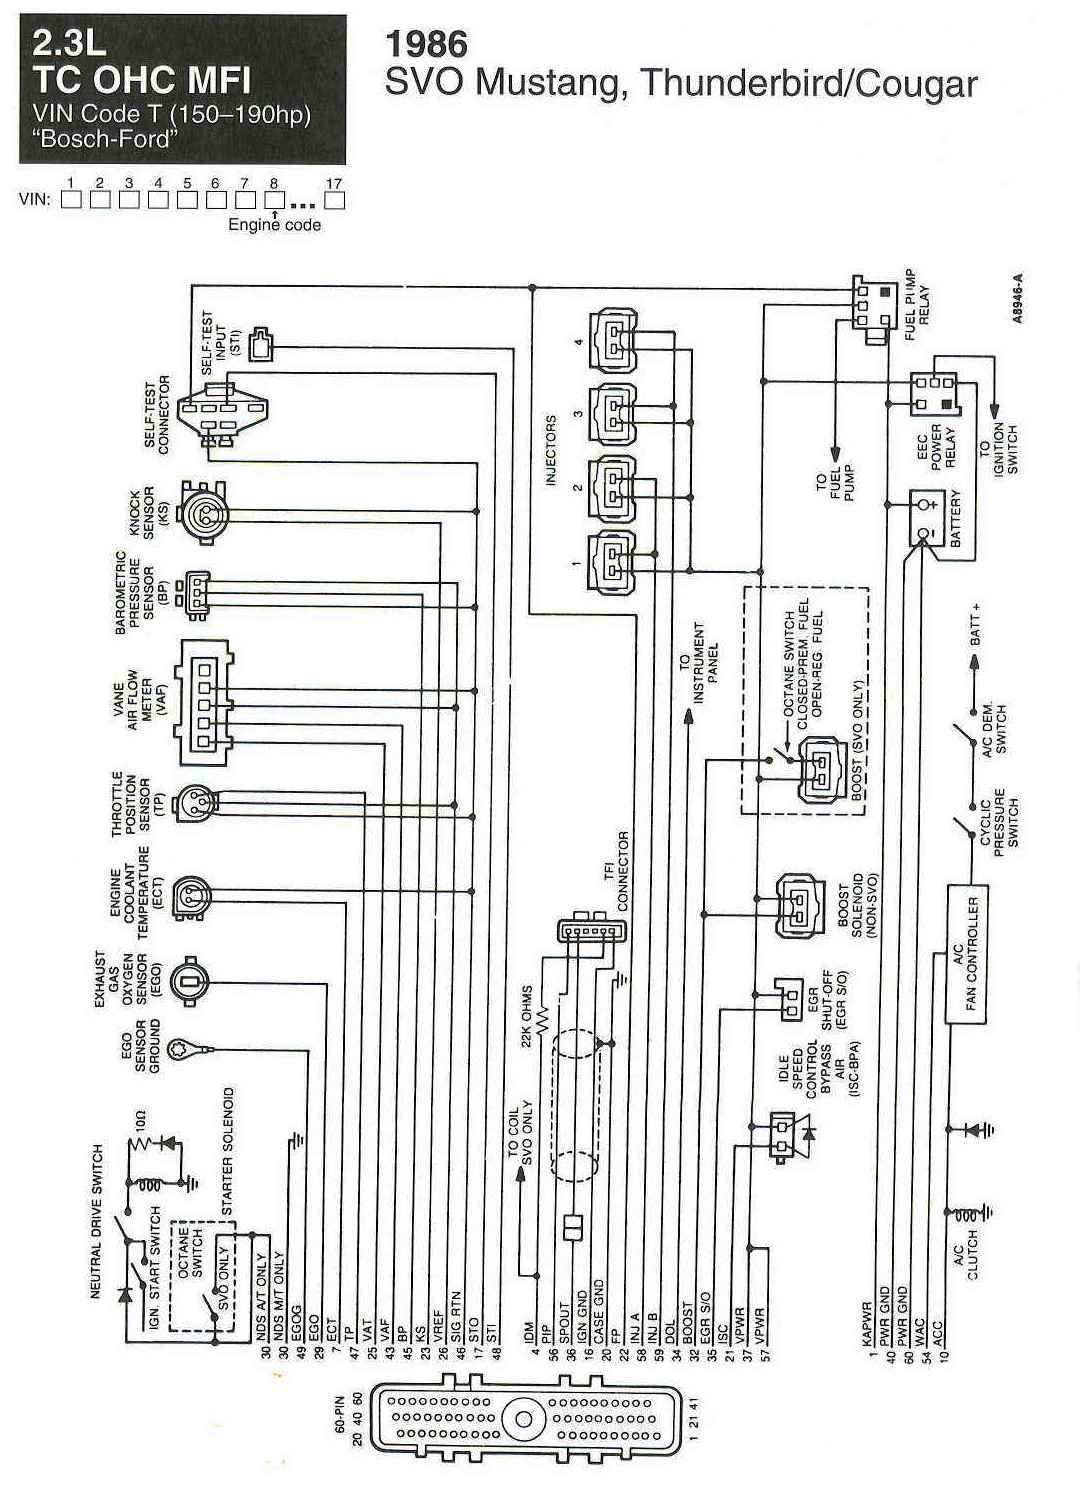 Wiring Diagrams For Svo